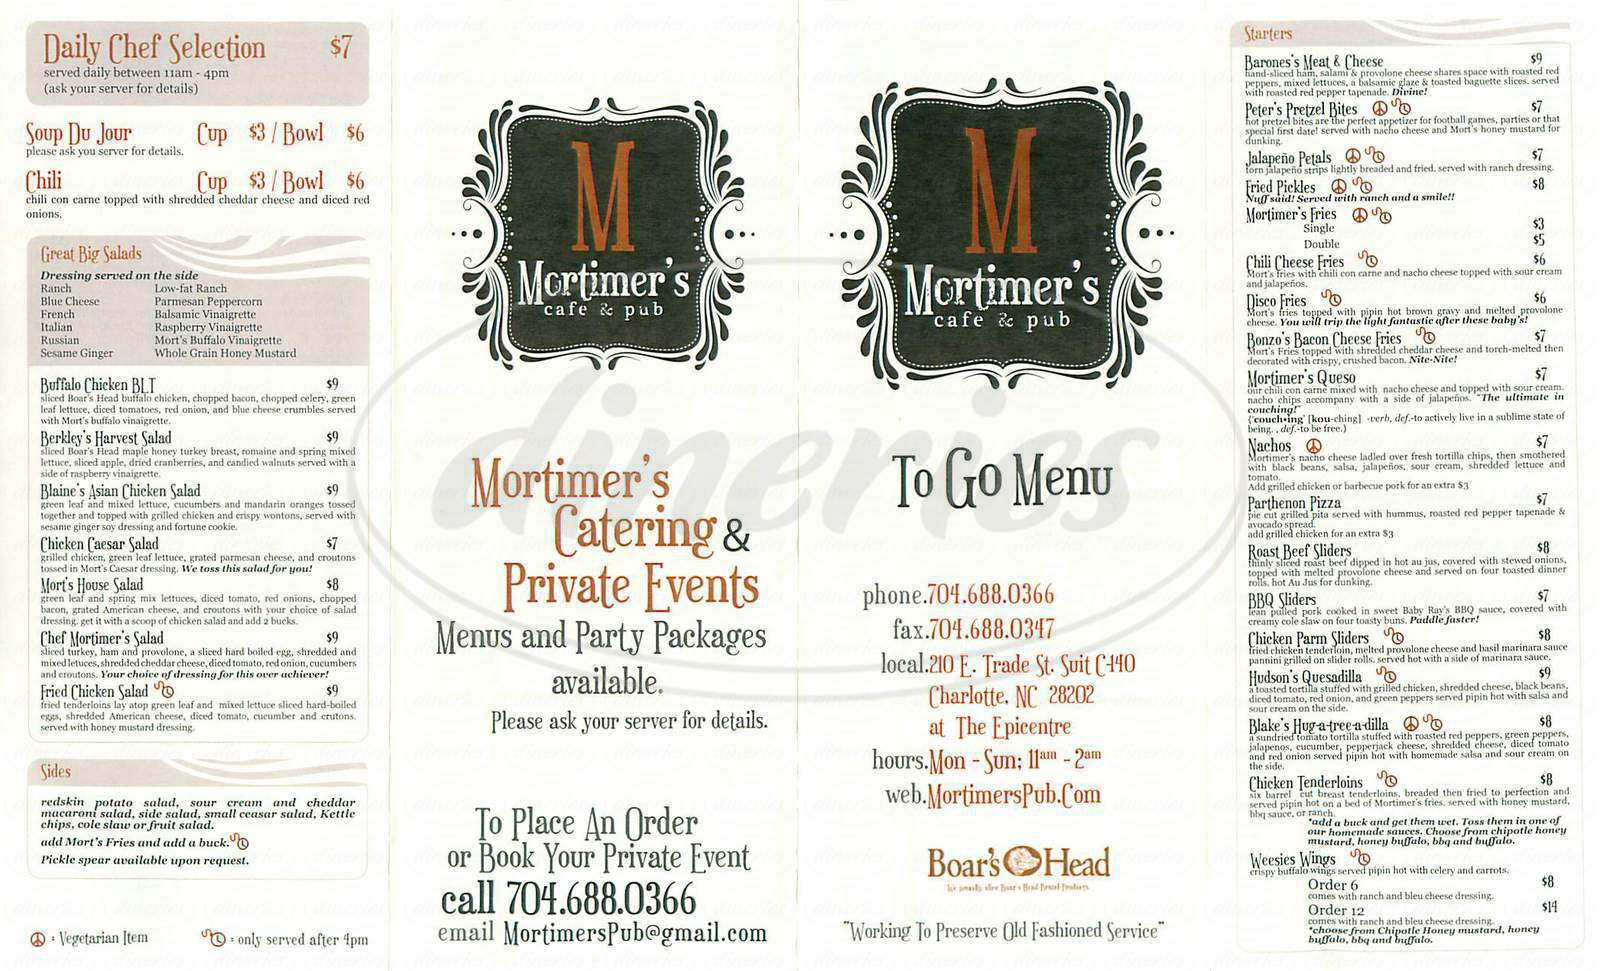 menu for Mortimer's Cafe and Pub